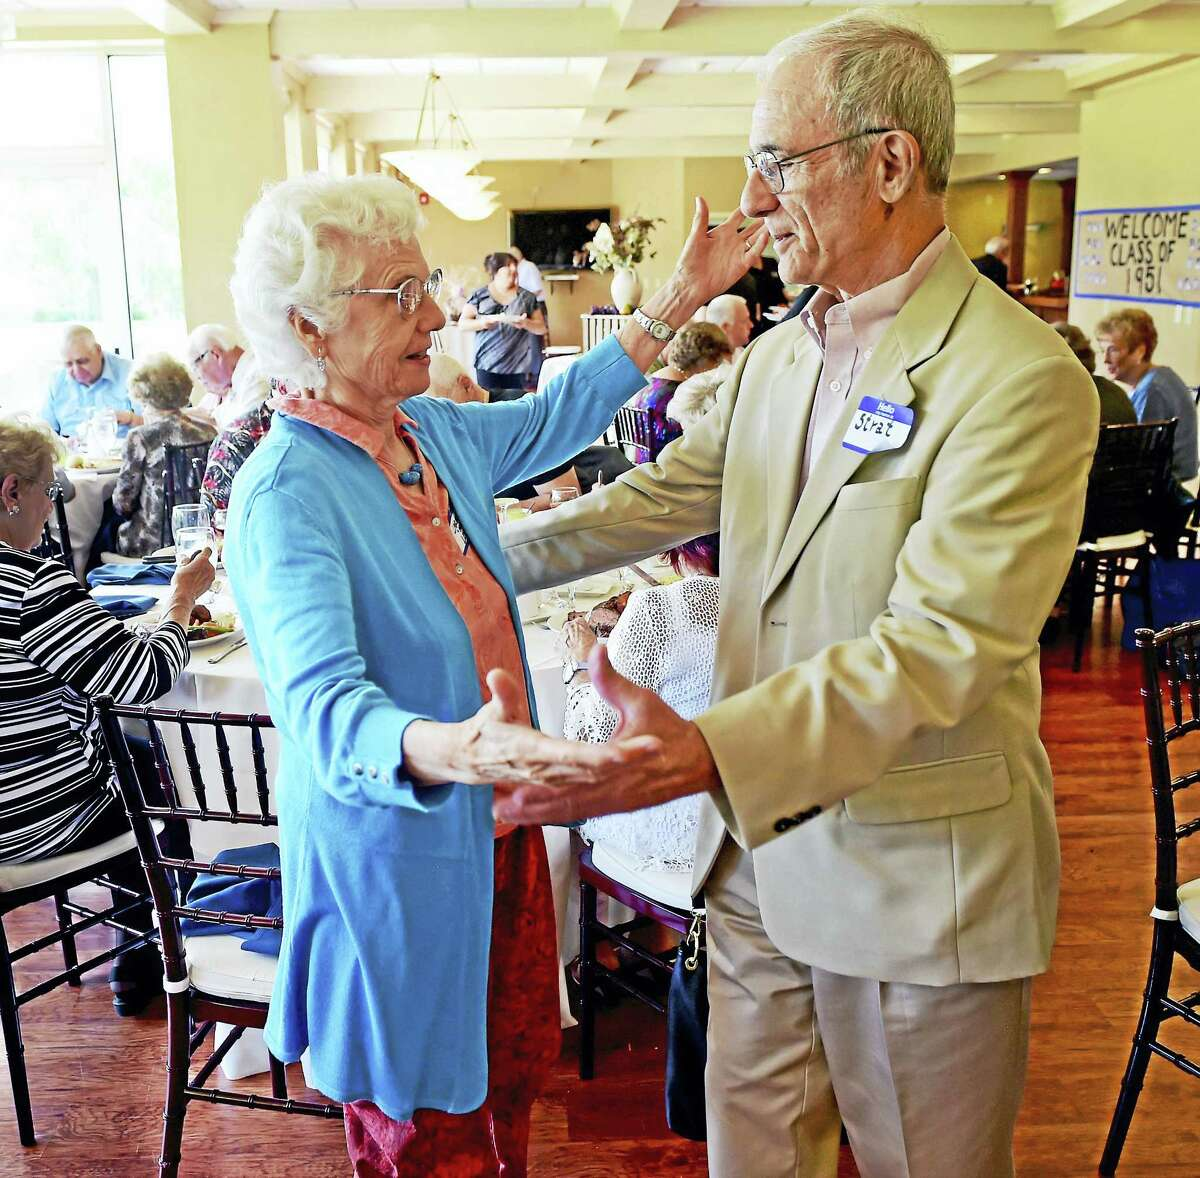 Peter Hvizdak - New Haven Register Carmela Grova Loda of Ithaca , NY. left, with high school friend Stratos Guiliotis of Los Gatos, California, both from the Ansonia High School class of 1951 feign dancing during a class reunion Sunday afternoon at the Traditional Golf Club at Oak Lane in Woodbridge. The two friends became dancing partners at an earlier reunion and were nicknamed Fred and Ginger after legendary dancers Fred Astaire and Ginger Rogers.